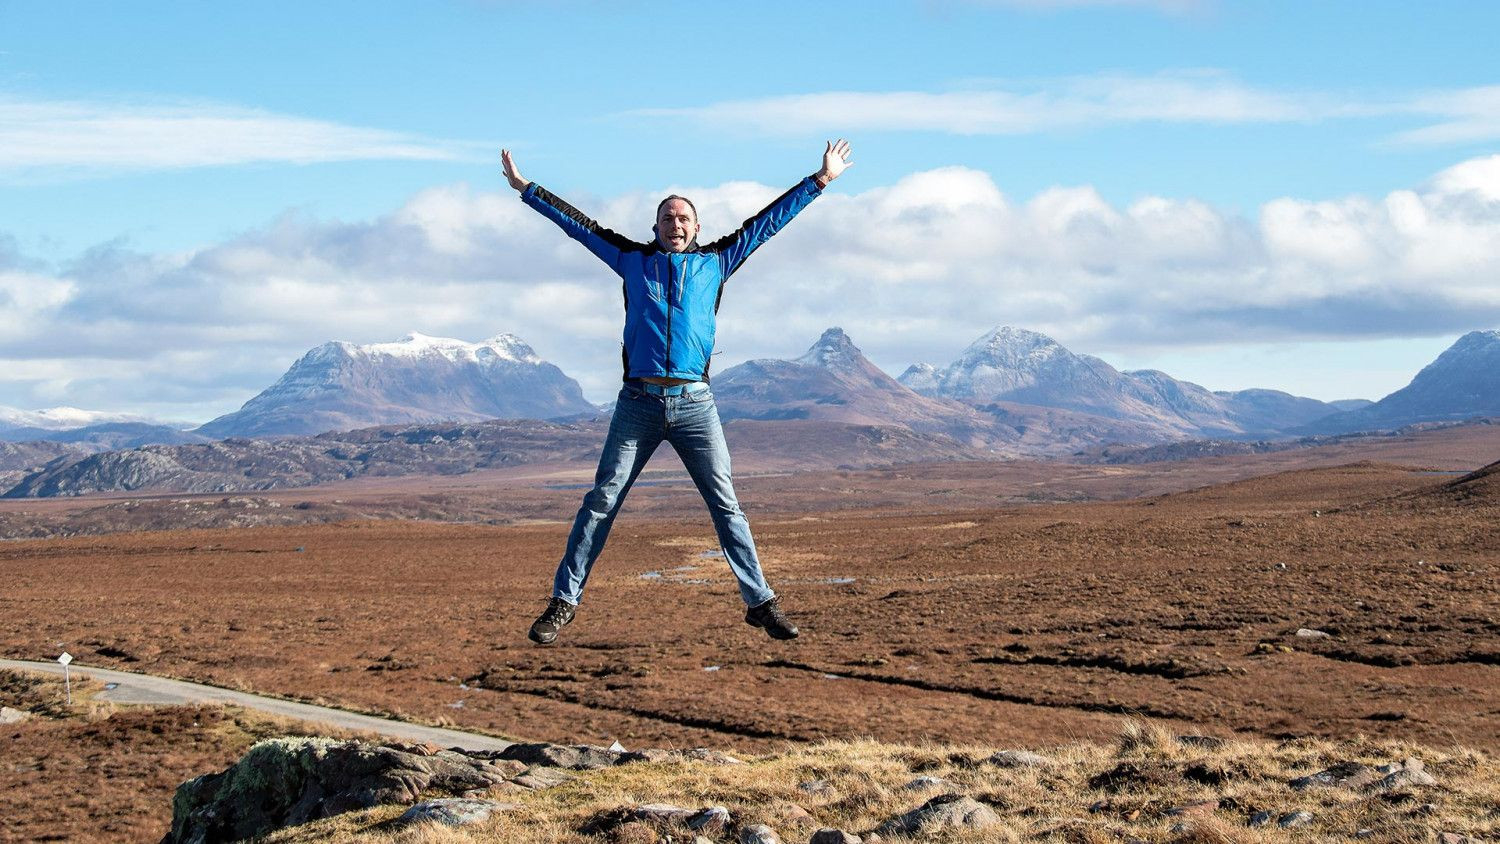 Allan MacFadyen jumping up in front of a mountainous landscape.